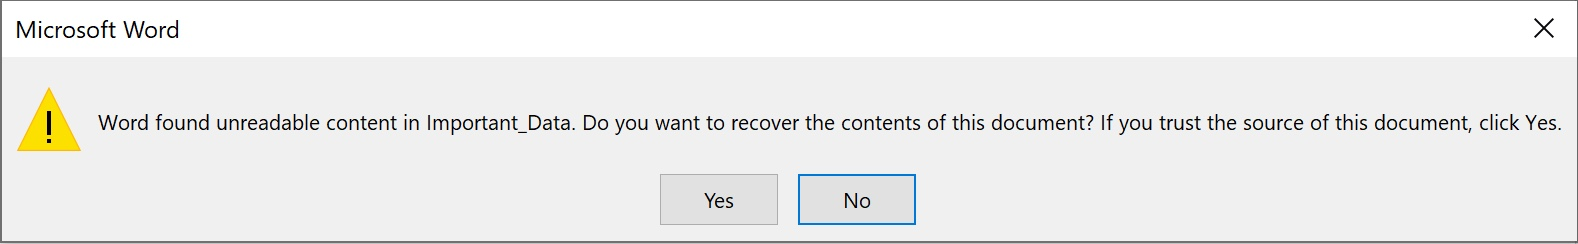 corrupted file message